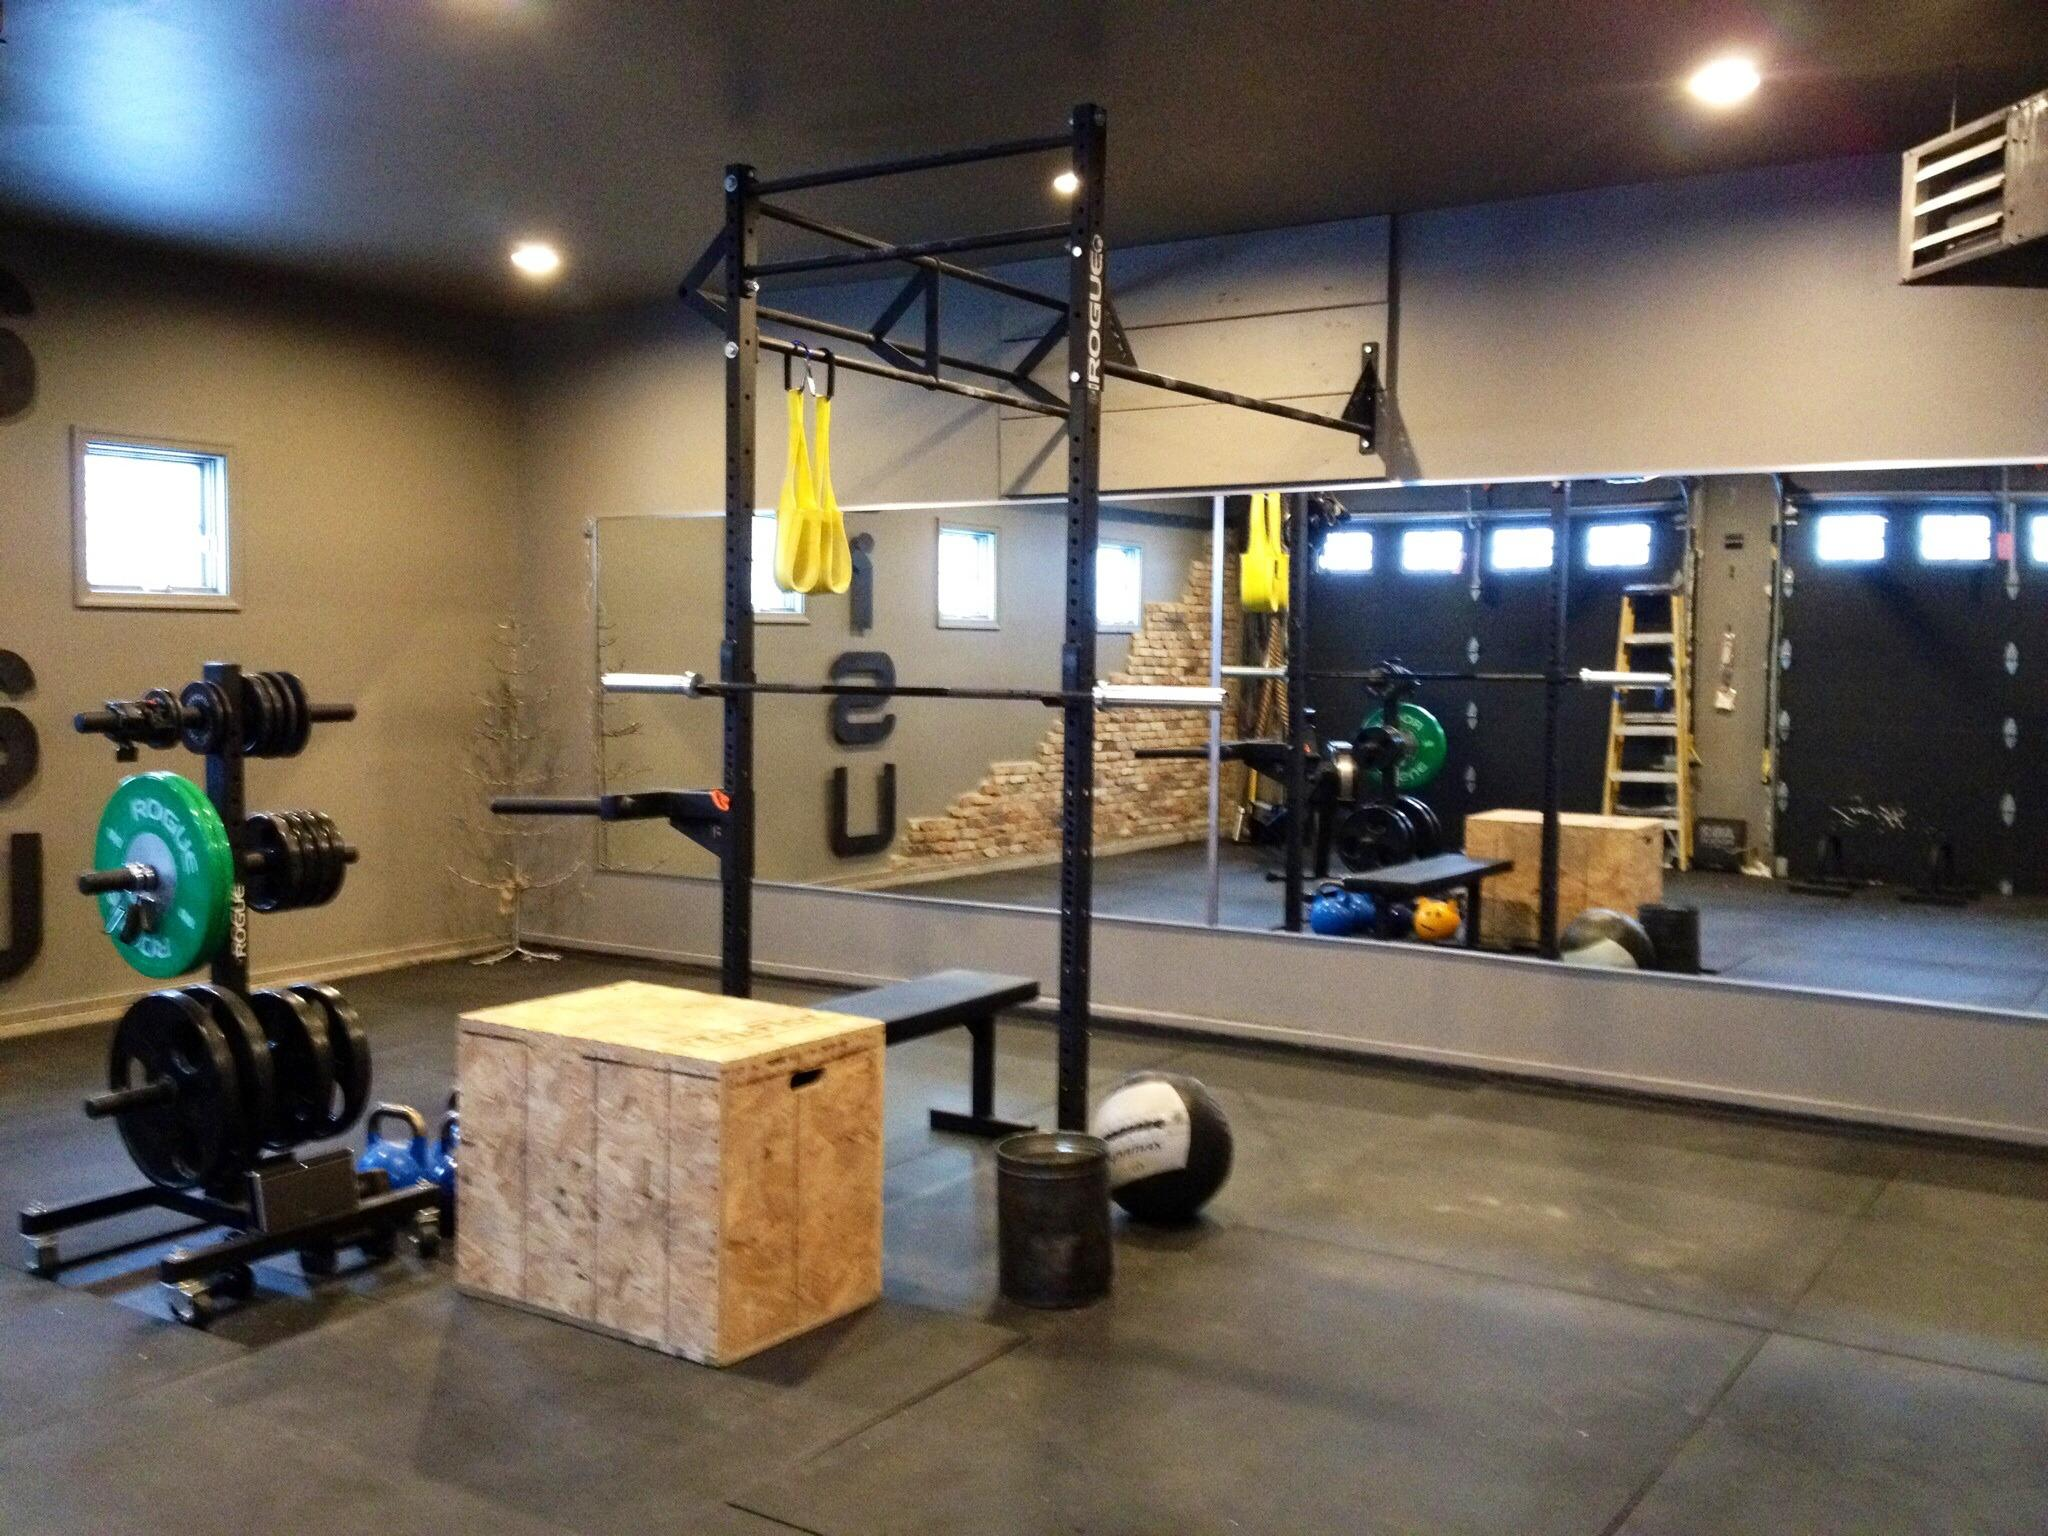 Rogue Fitness On Twitter Garage Gym Setup Courtesy Of Maria Berg Http T Co Nai40jikiy Oyotj1uxsp